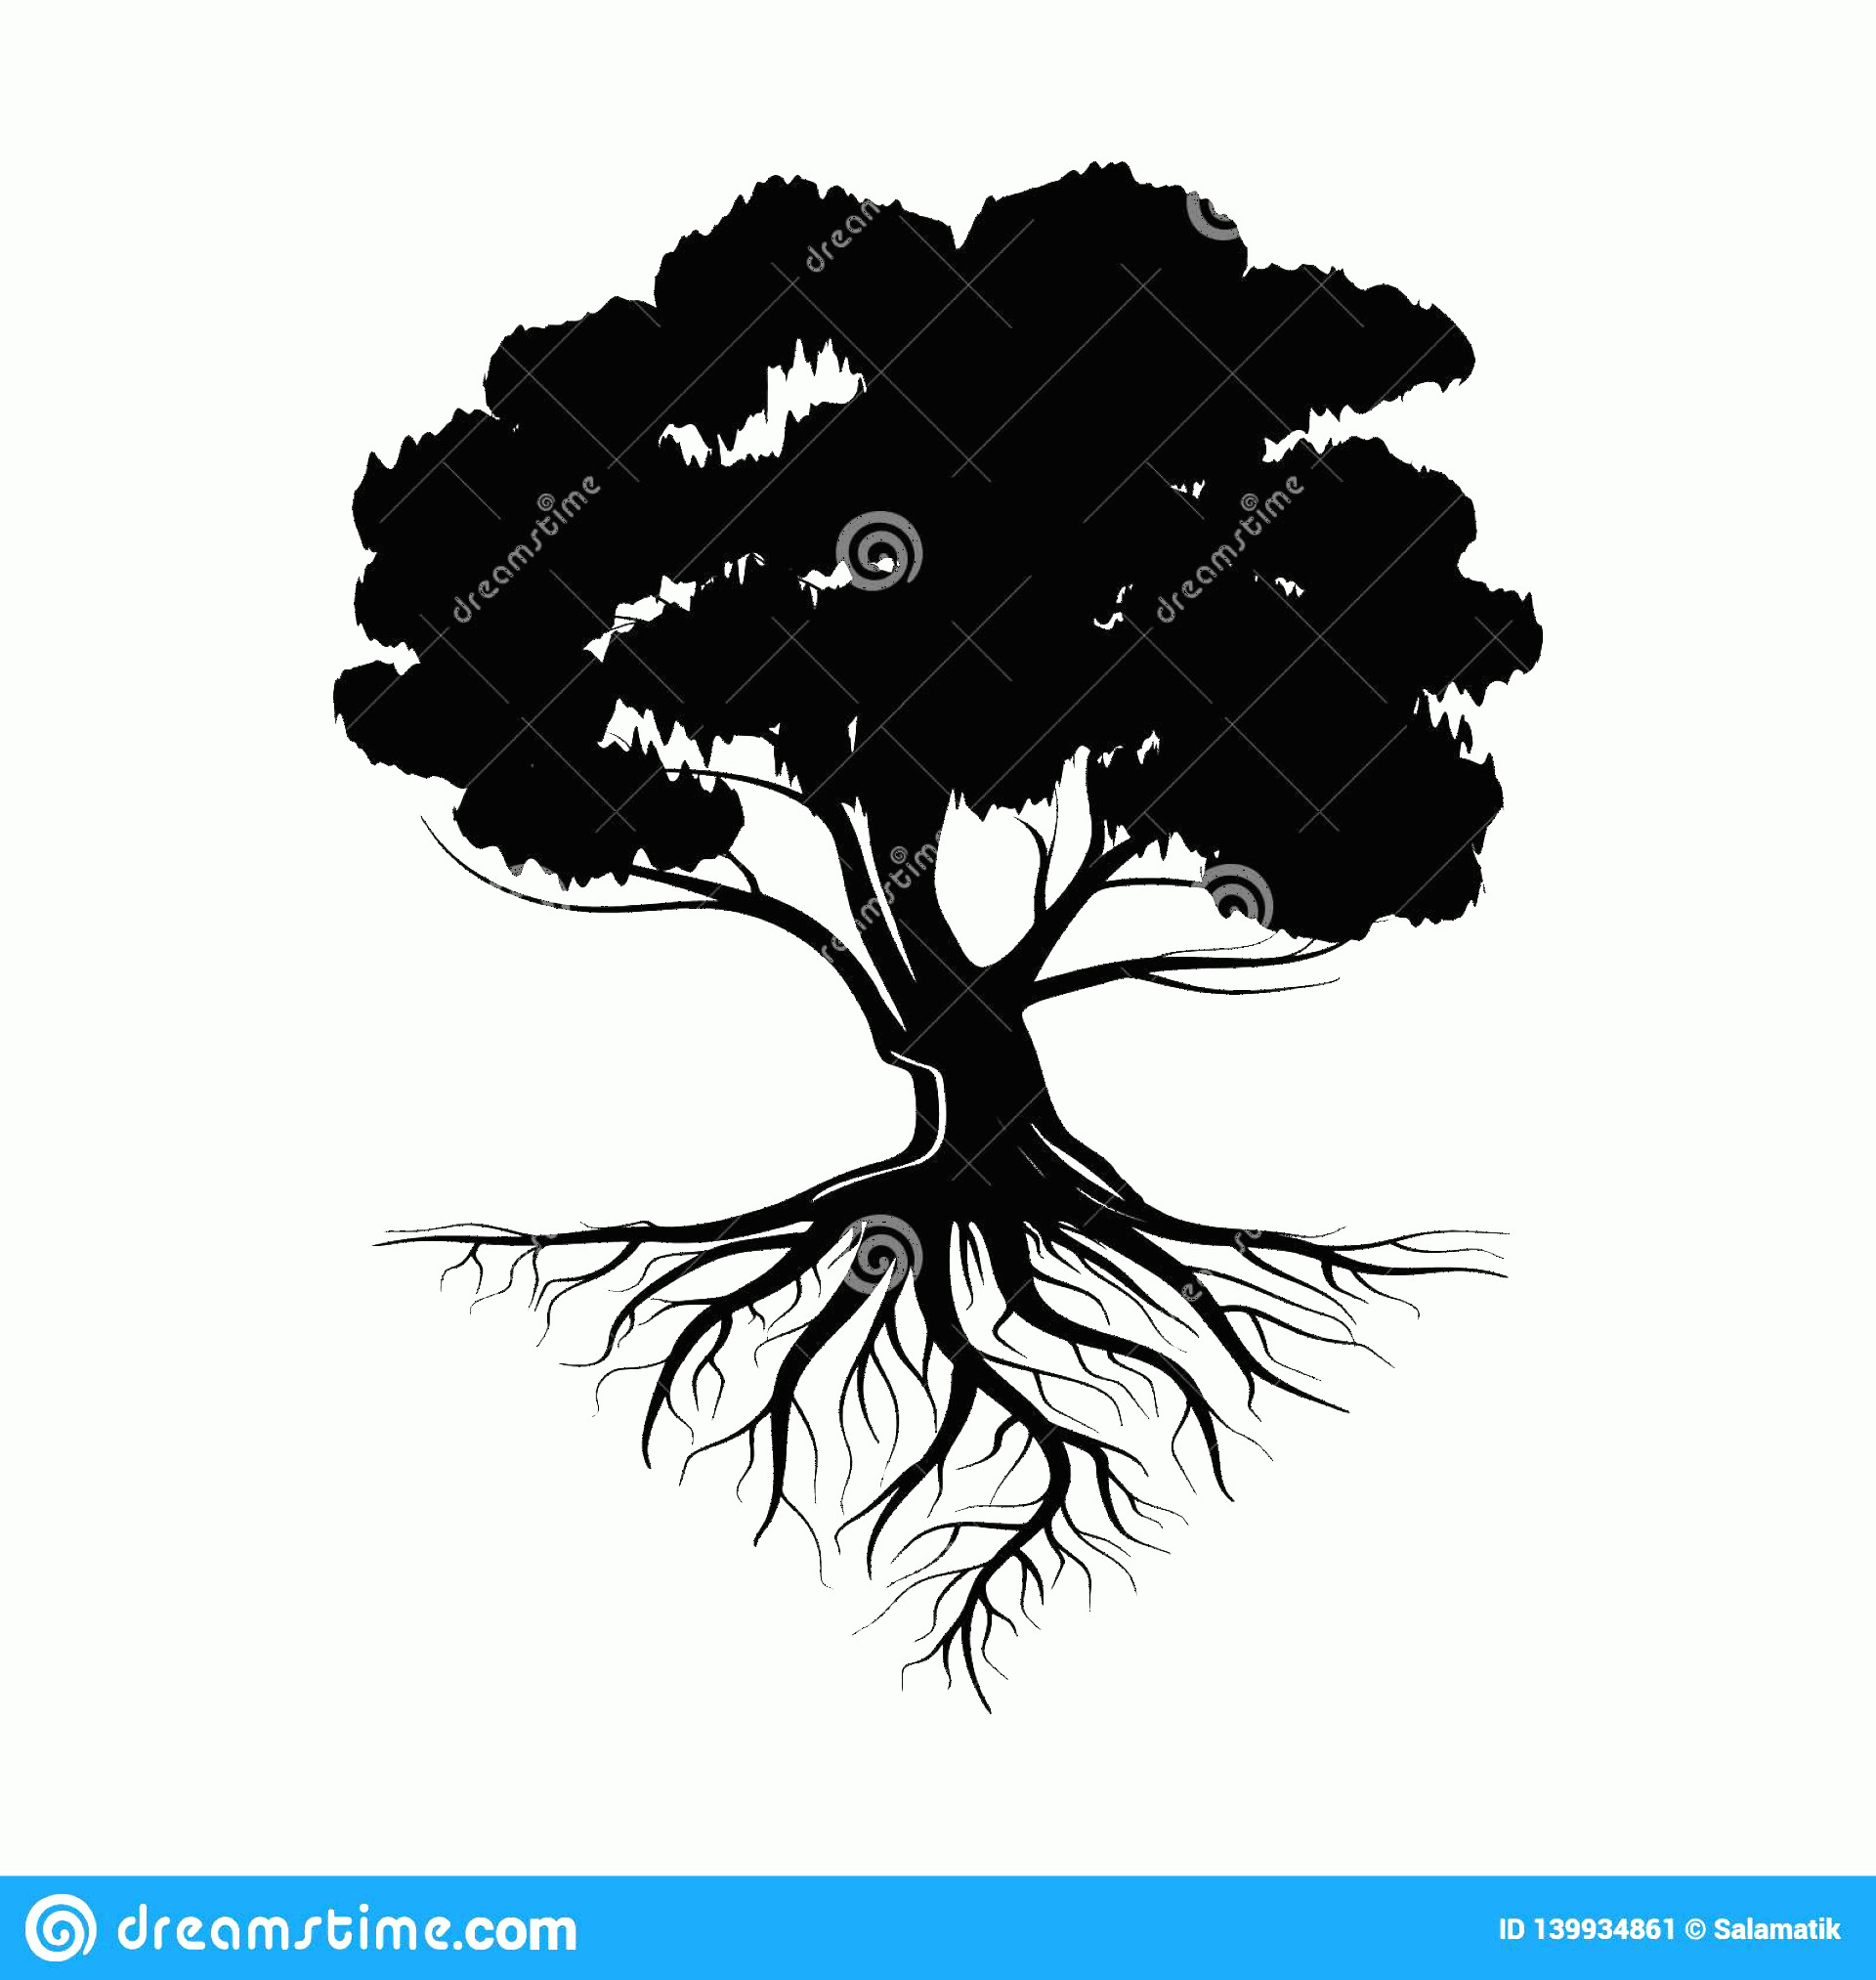 Vector Tree With Roots Drawing: Logo Black Tree Roots Leaves Vector Illustration Icon Isolated White Background Logo Black Life Tree Image